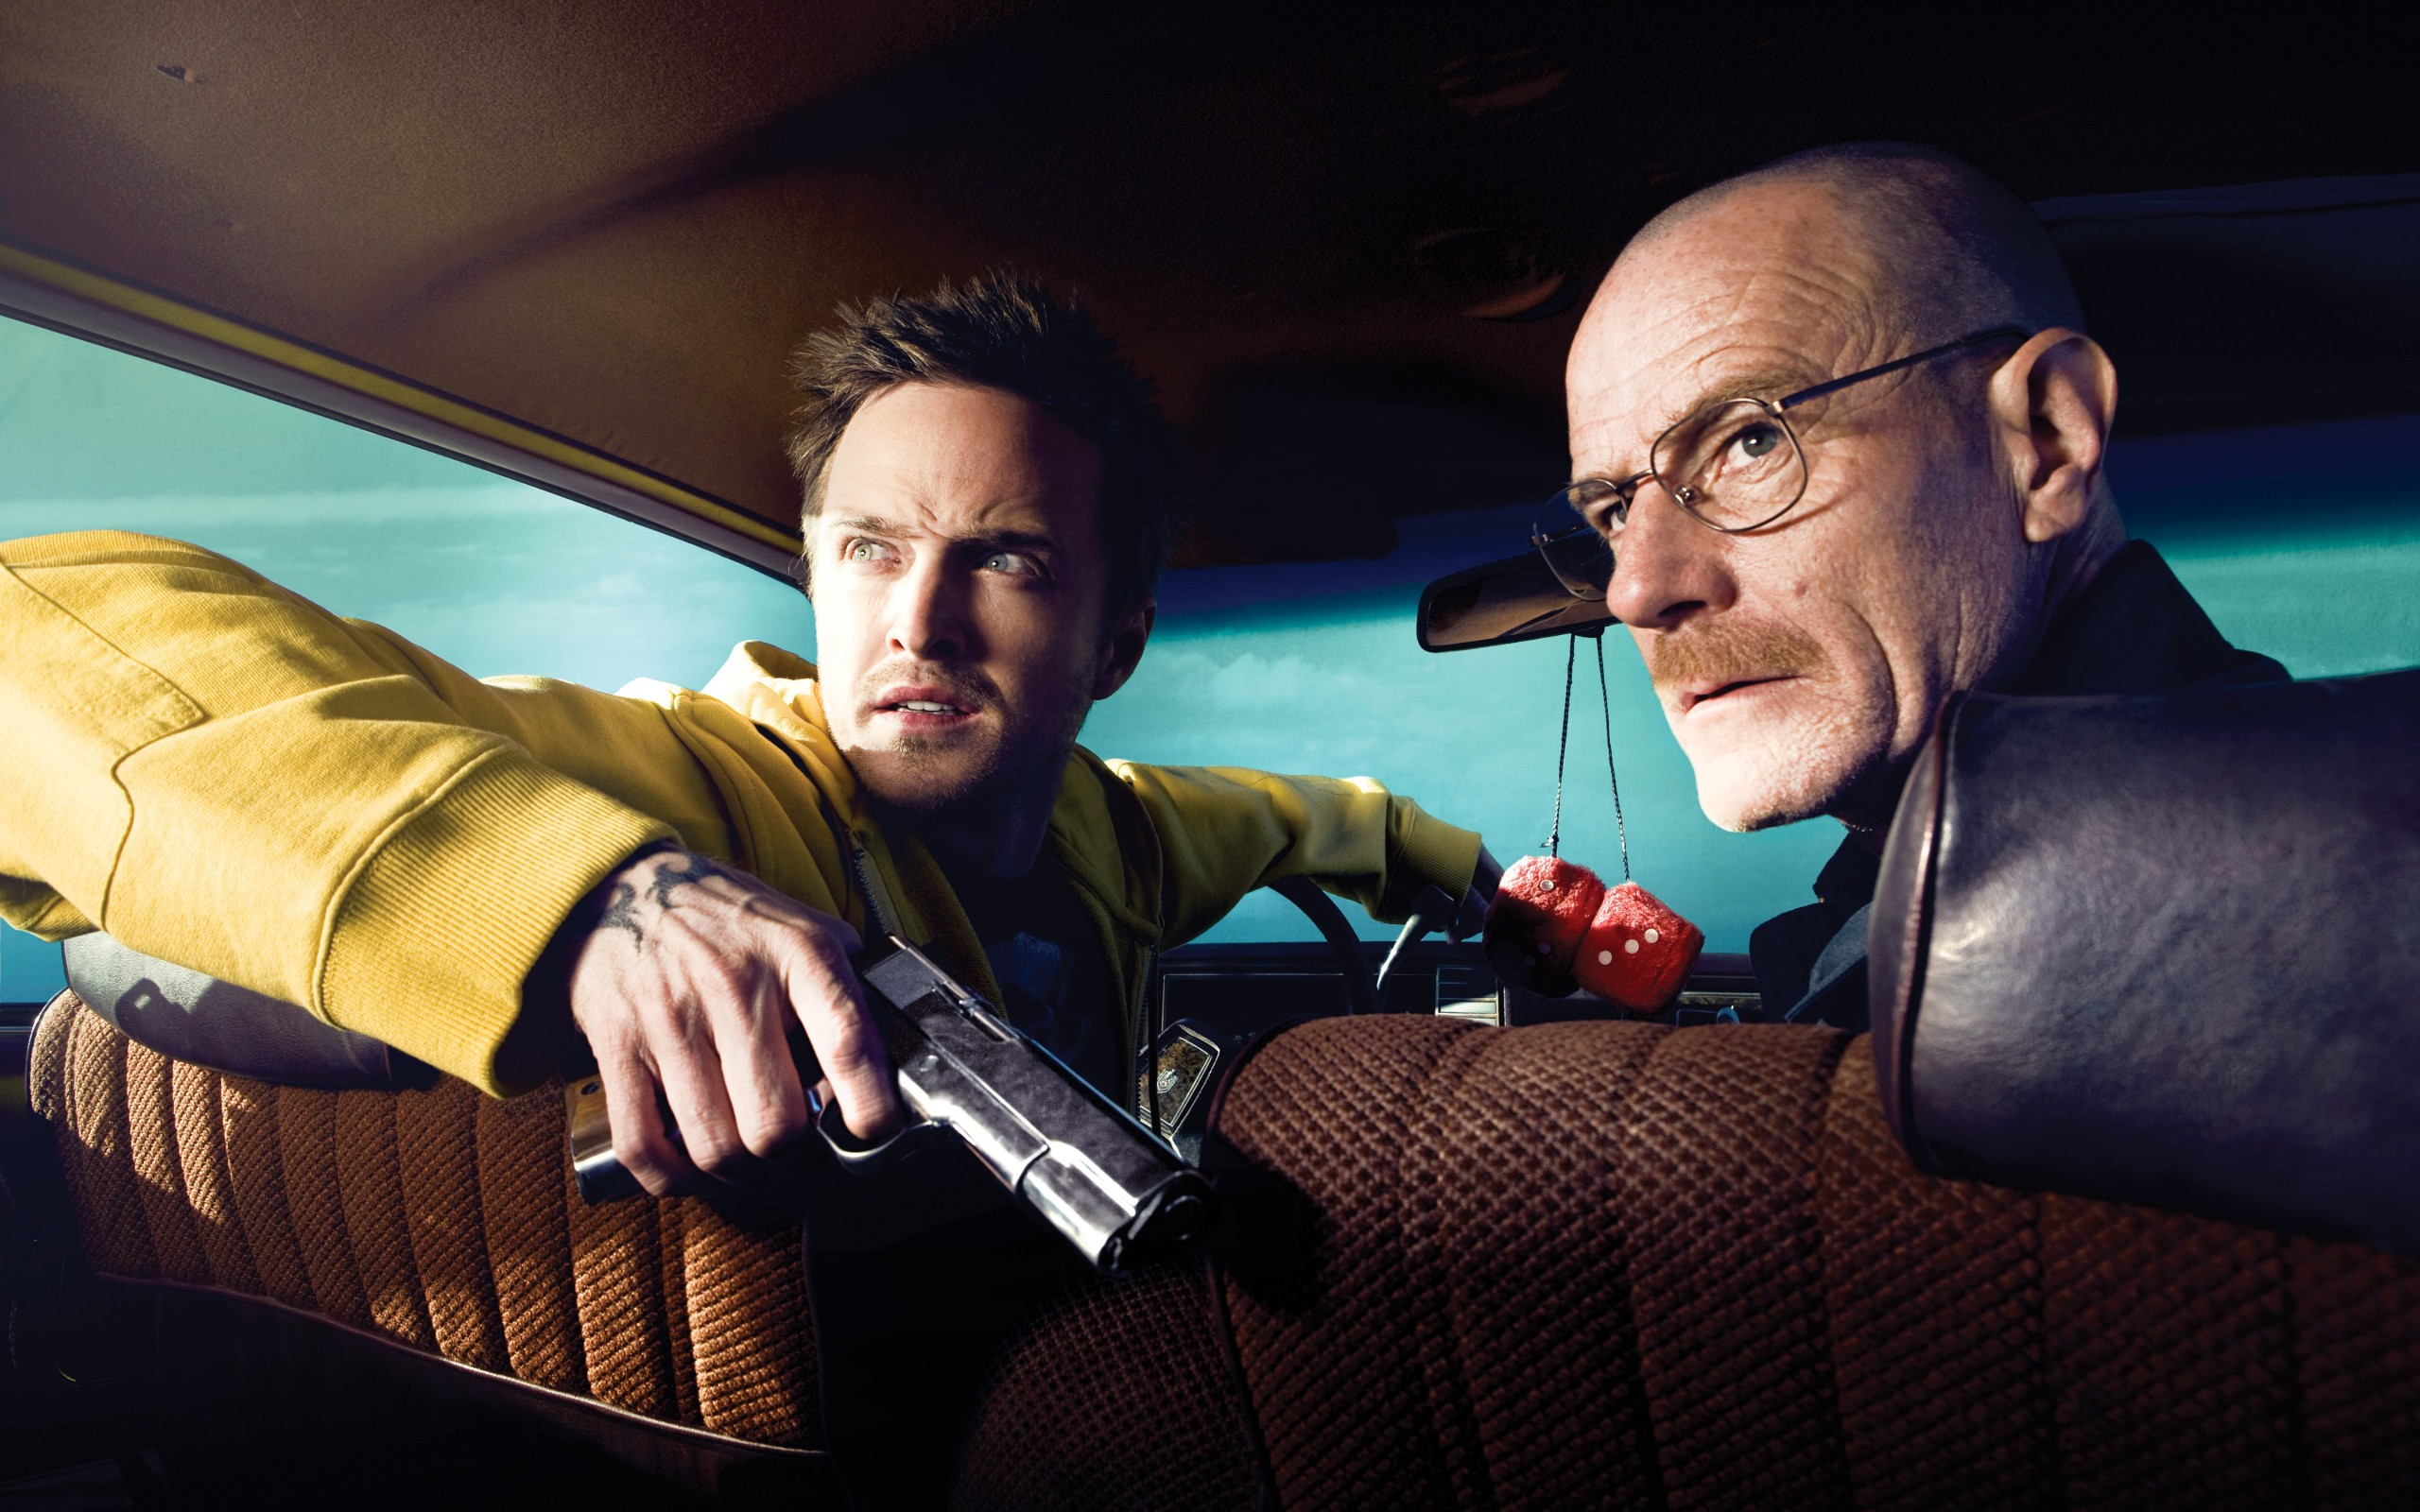 Breaking Bad - Jesse Pinkman & Walter White Wallpaper for Desktop 2560x1600